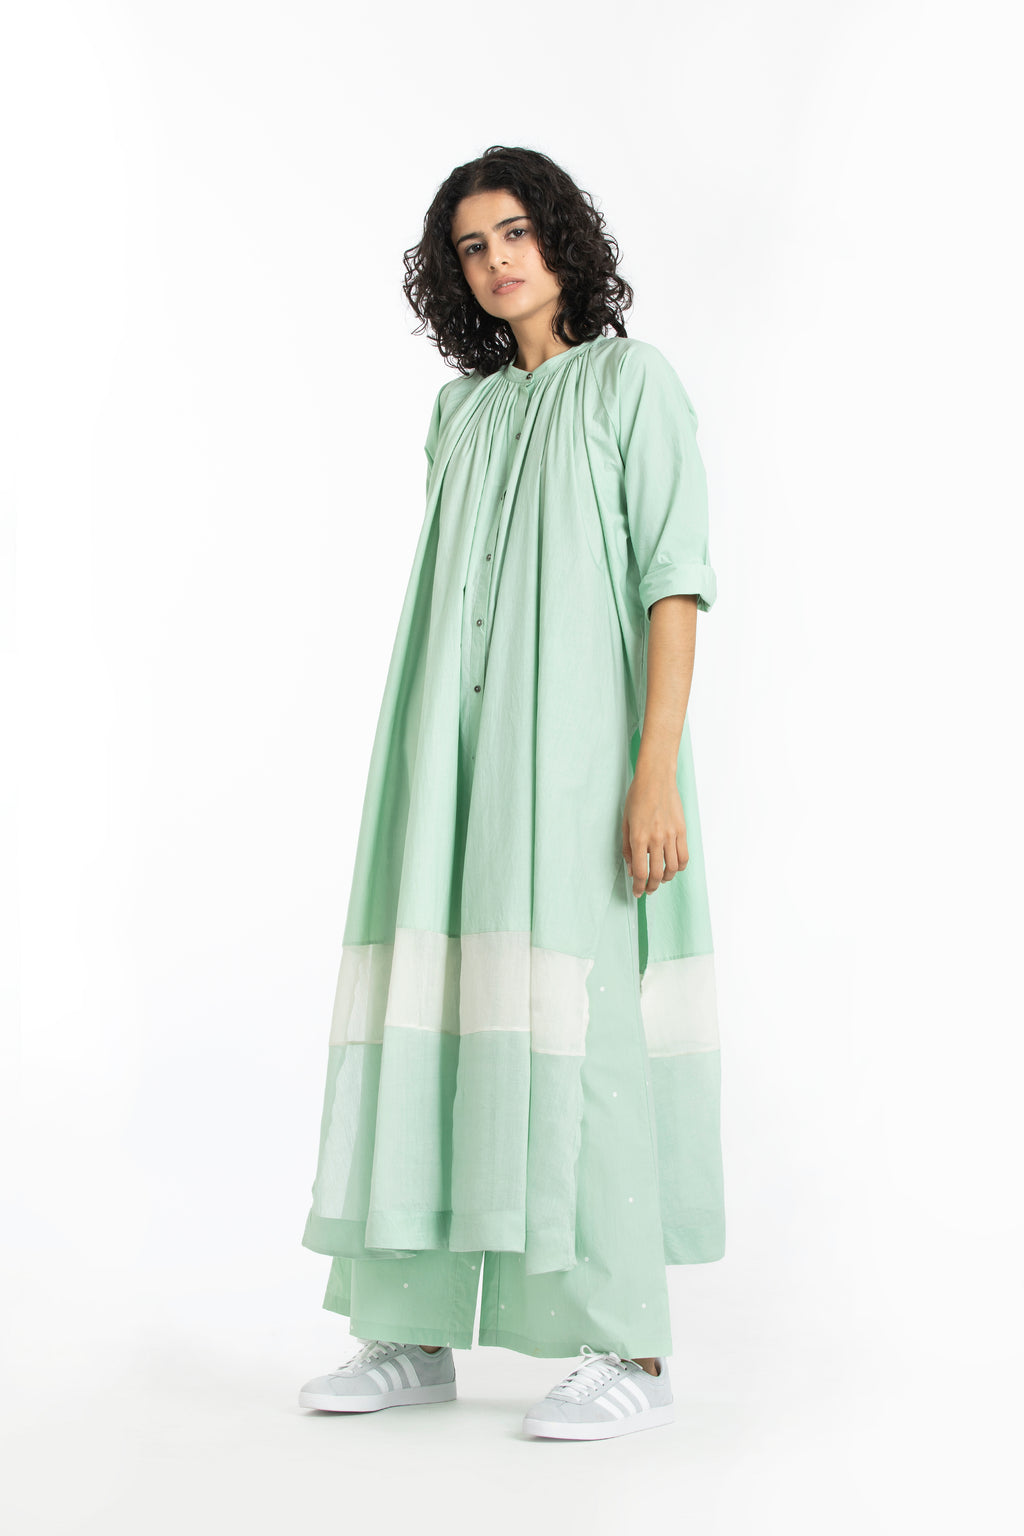 Panel gather neck shirt co-ord  mint